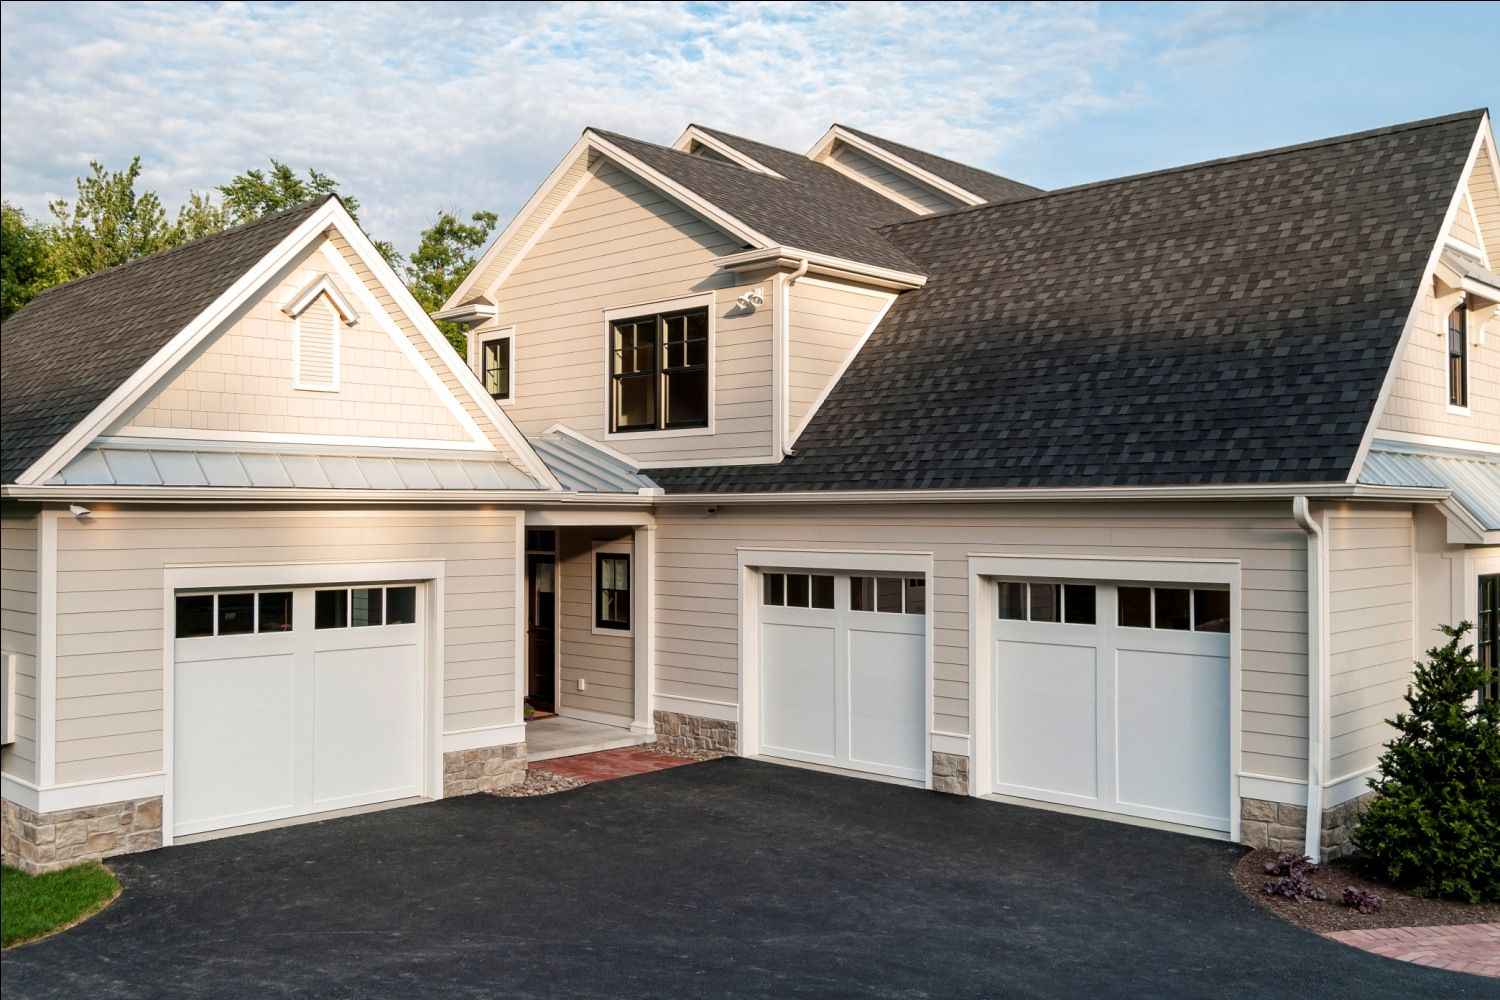 Street Of Dreams 2014 Gallery Farinelli Construction Inc Garage Addition Garage Door Design Facade House